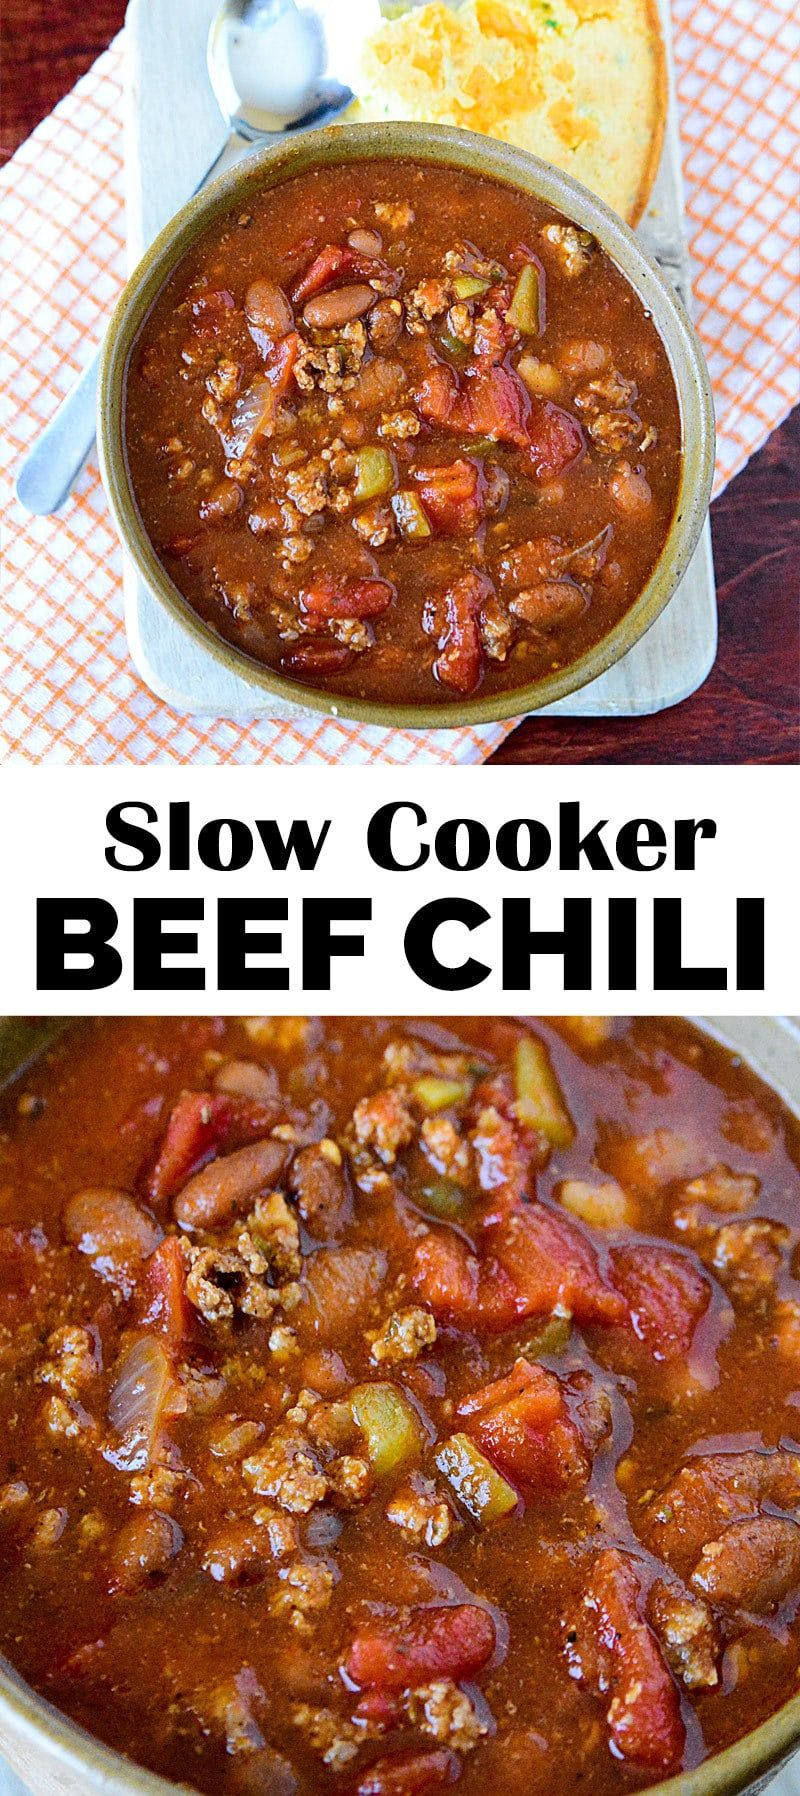 Easy Slow Cooker Beef Chili Recipe Full Of Flavor But Not Too Spicy The Best Beef Ch Slow Cooker Chili Recipe Slow Cooker Beef Chili Recipe Beef Chili Recipe